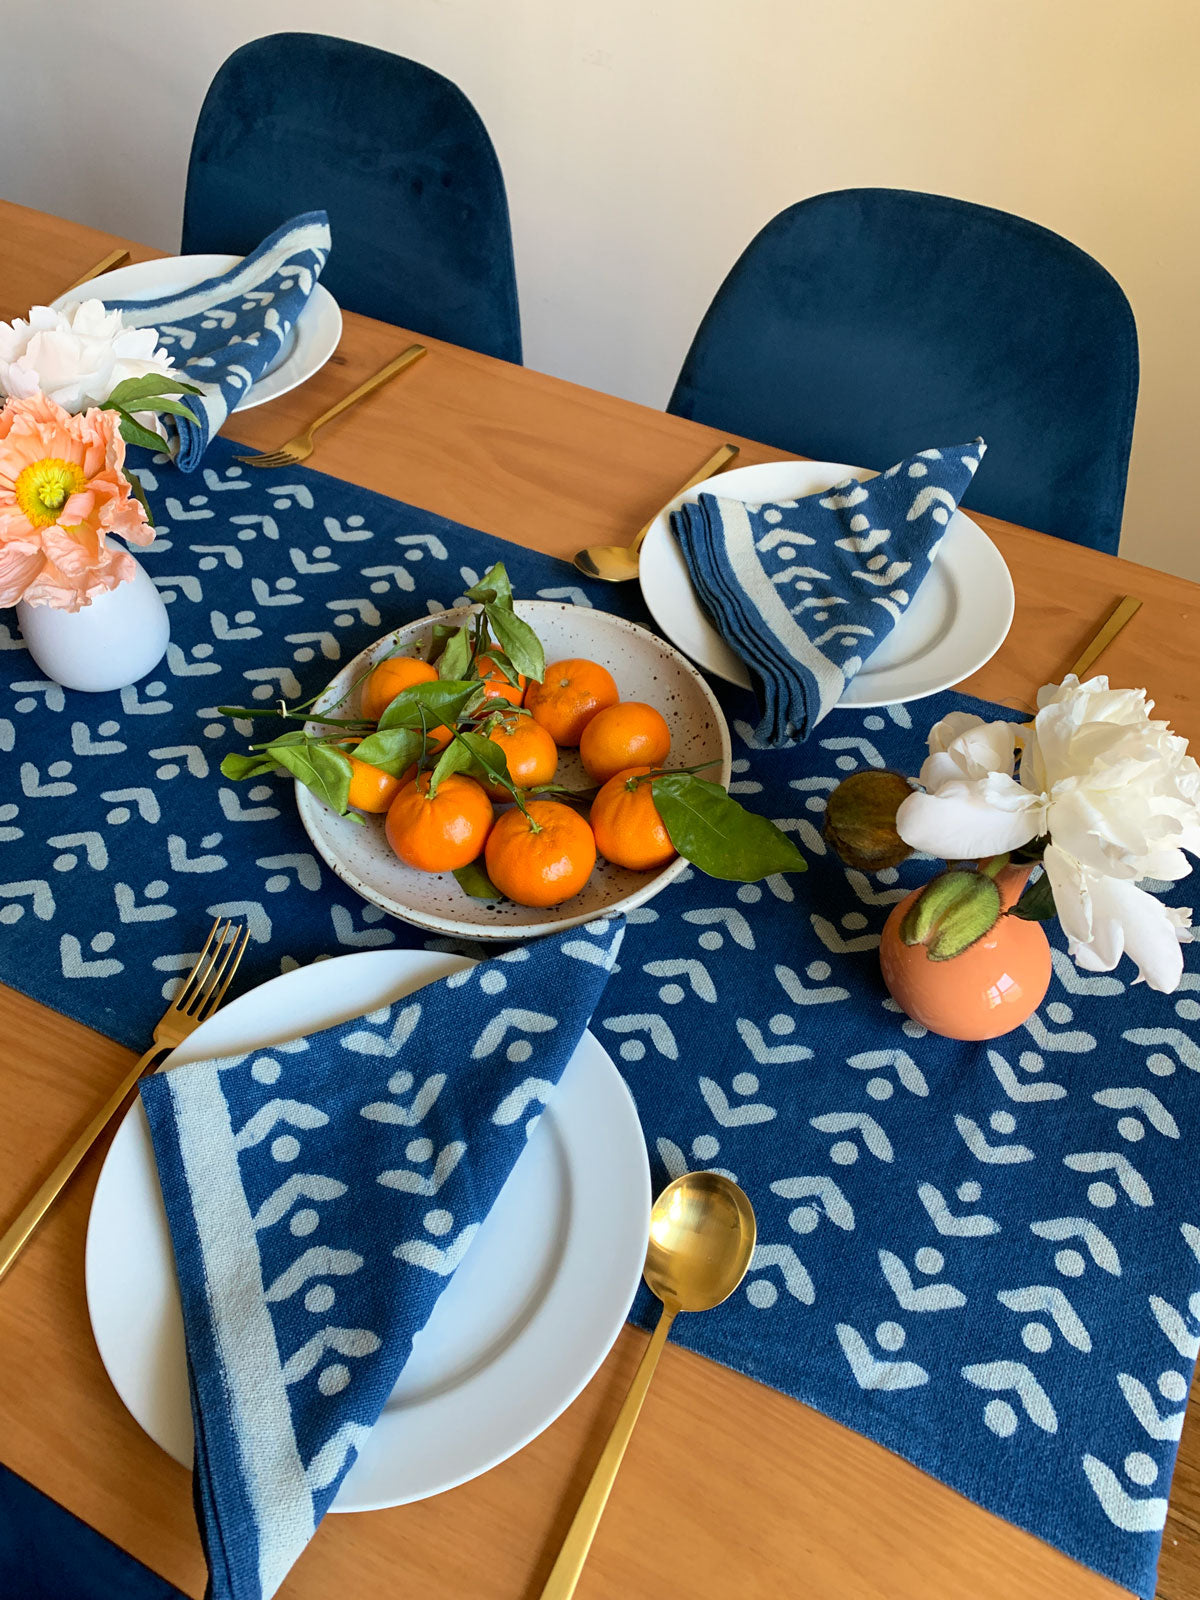 SUNDAY/MONDAY's hand block printed EGRET table runner and napkins. Printed with mud resist and dyed with natural indigo in India. Blue and white floral inspired table linens.